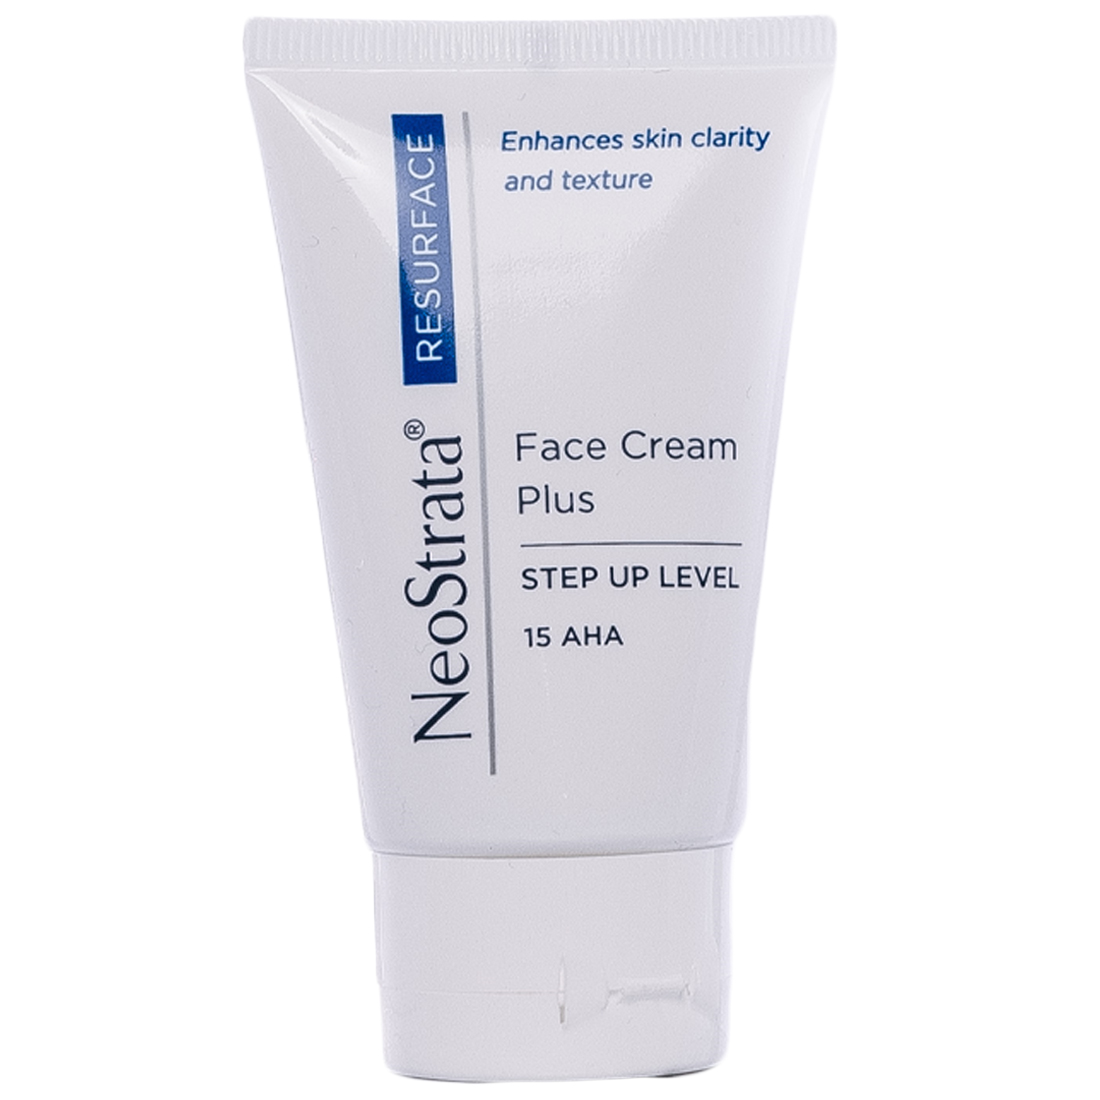 neostrata__0000s_0002_FACE CREAM PLUS